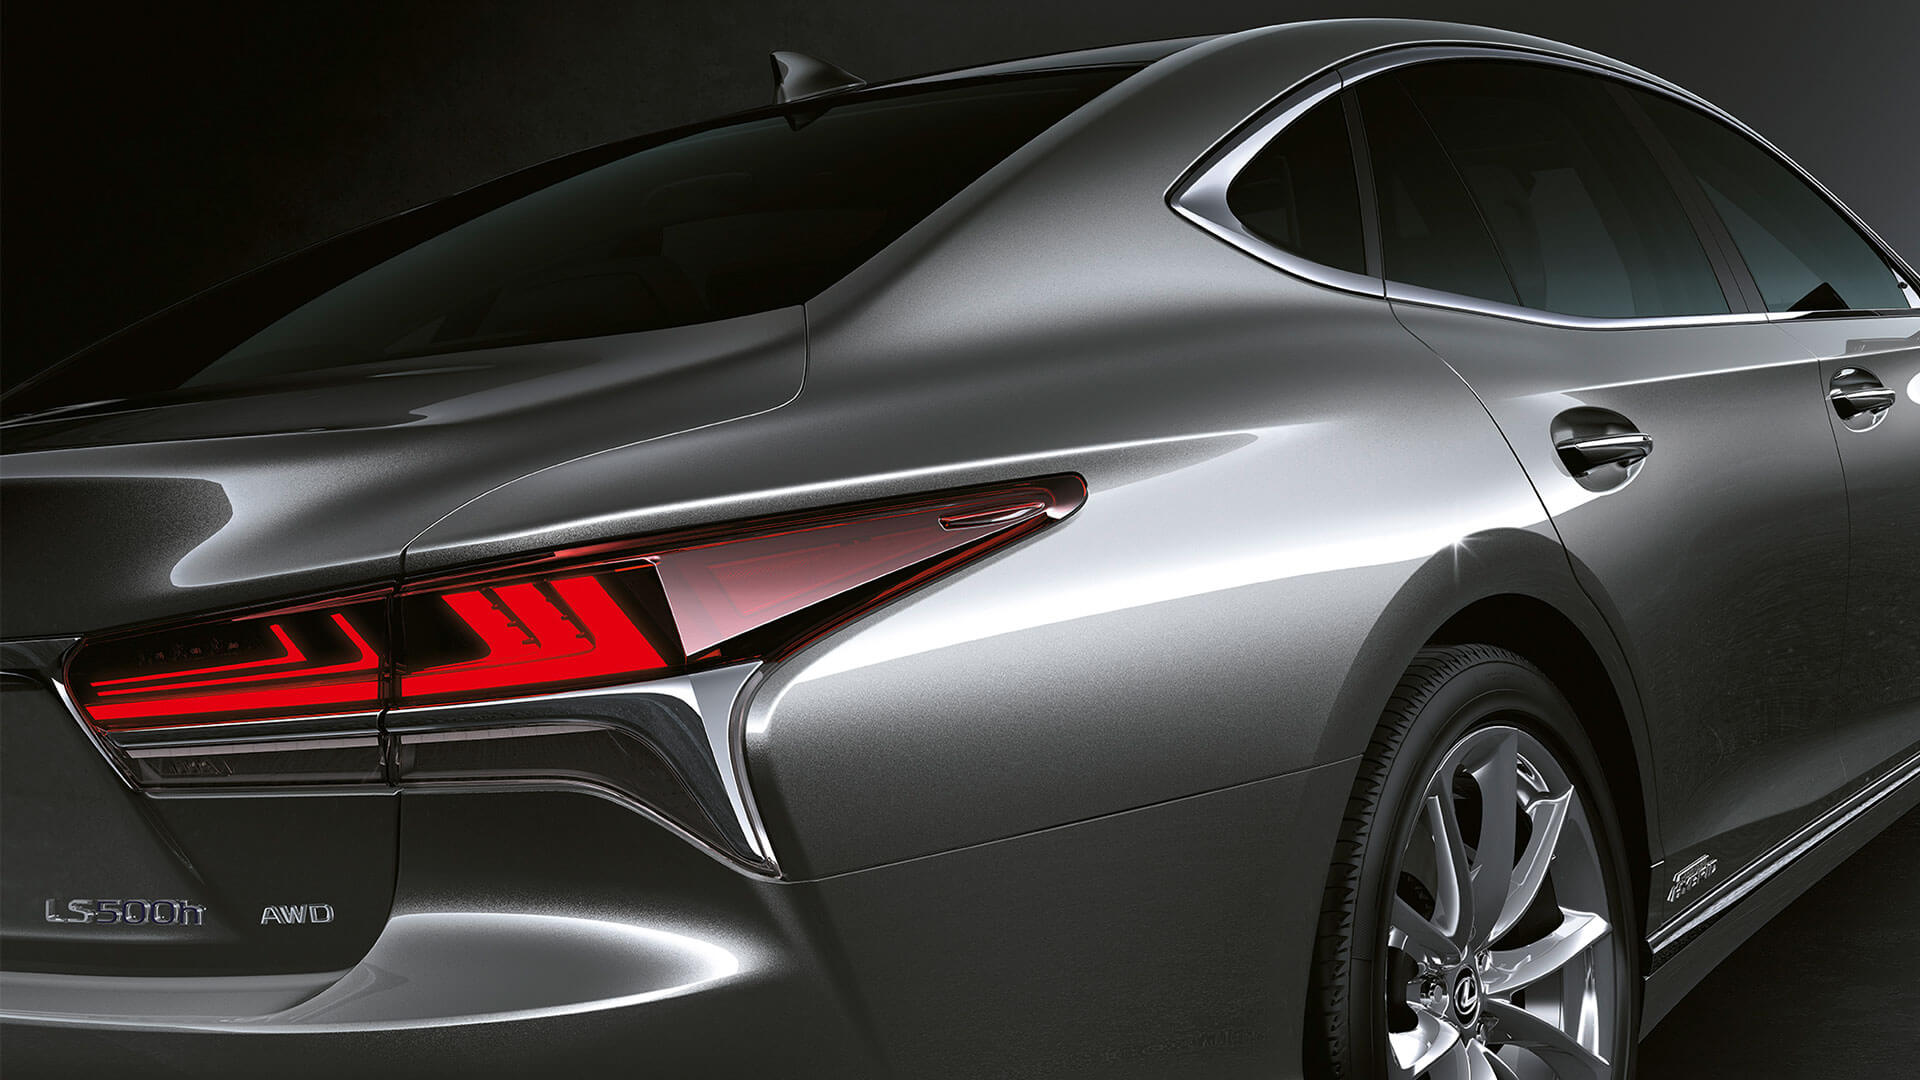 2018 lexus ls features led rear combination lights